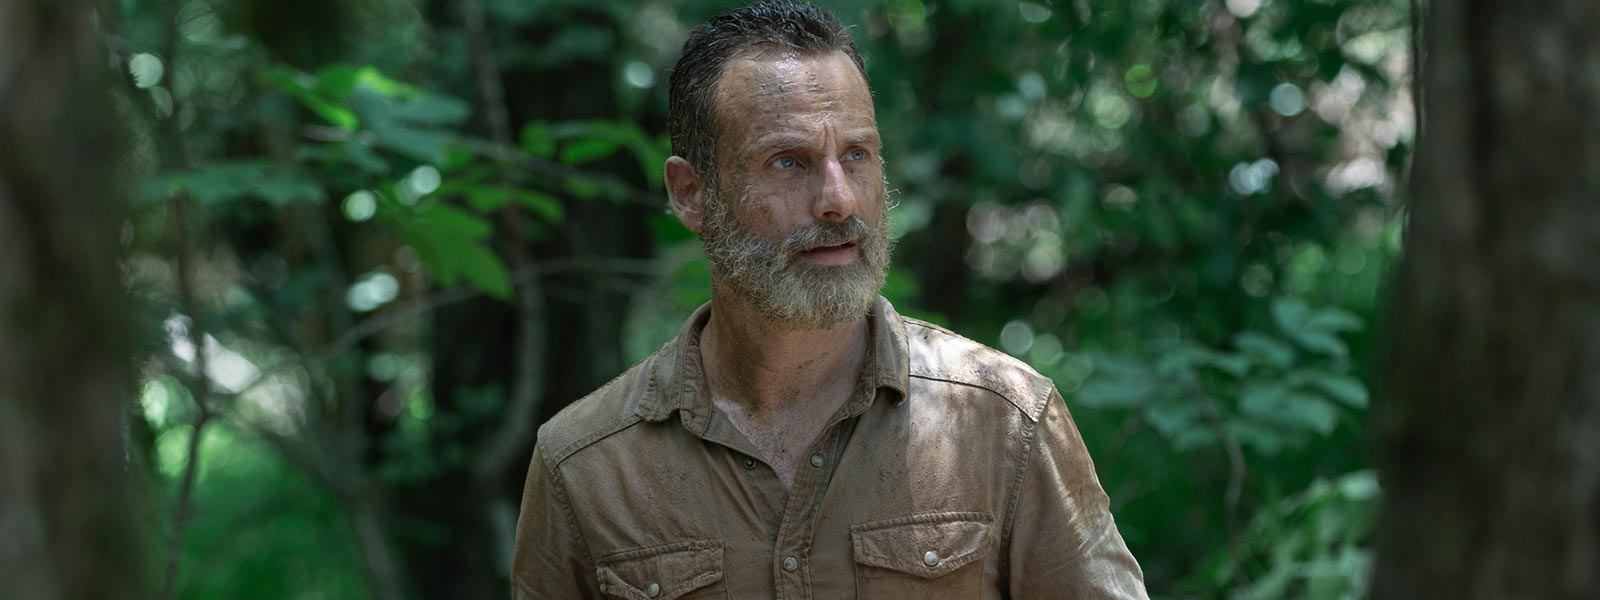 the-walking-dead-episode-904-rick-lincoln-pre-800×600